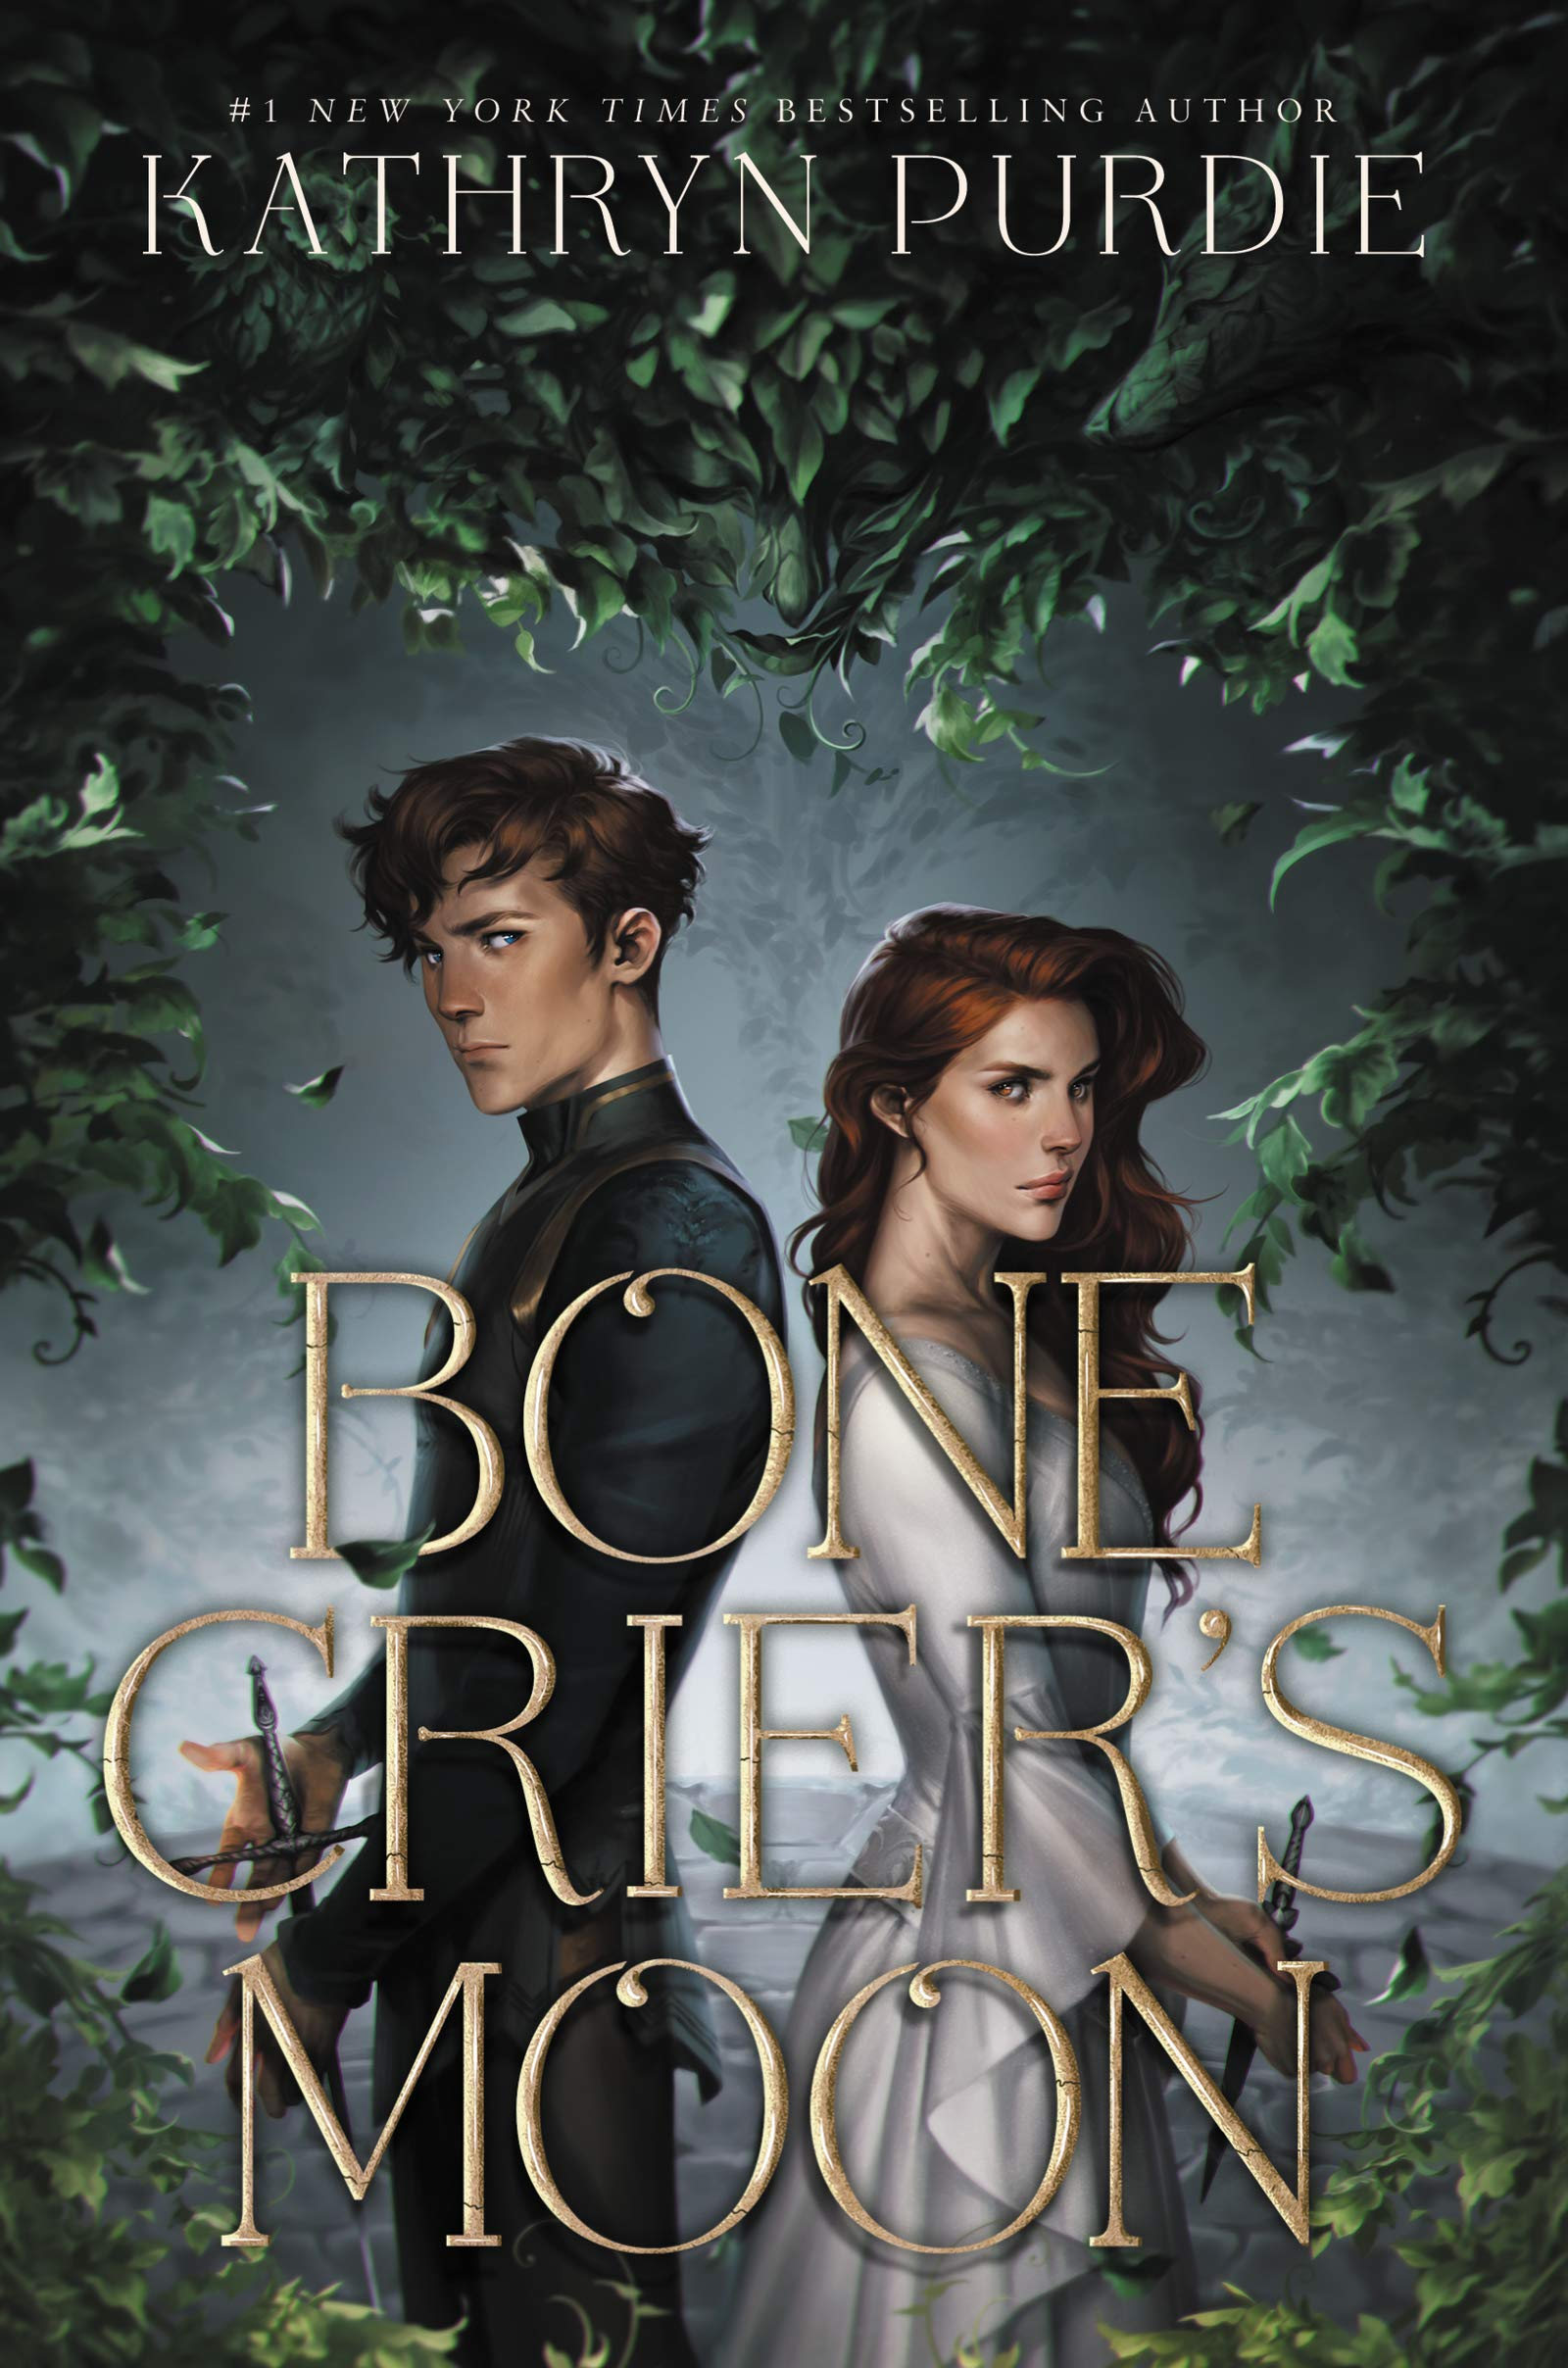 Amazon.com: Bone Crier's Moon (9780062798770): Purdie, Kathryn: Books